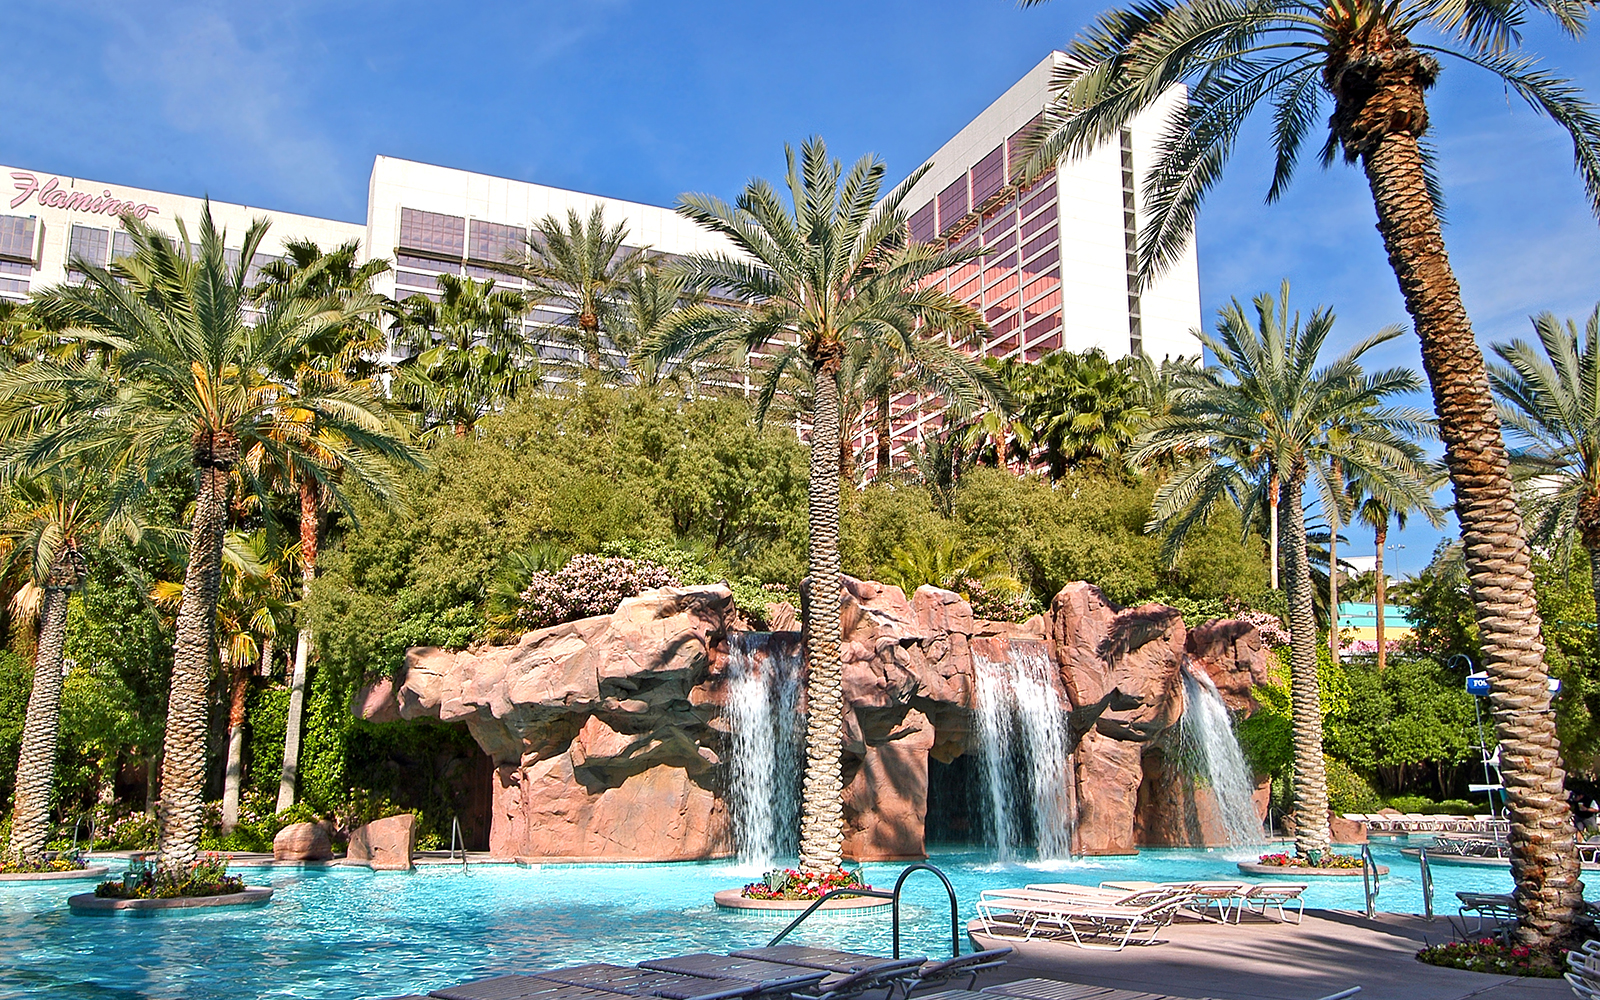 Best Pools in Las Vegas: GO Pool, Flamingo